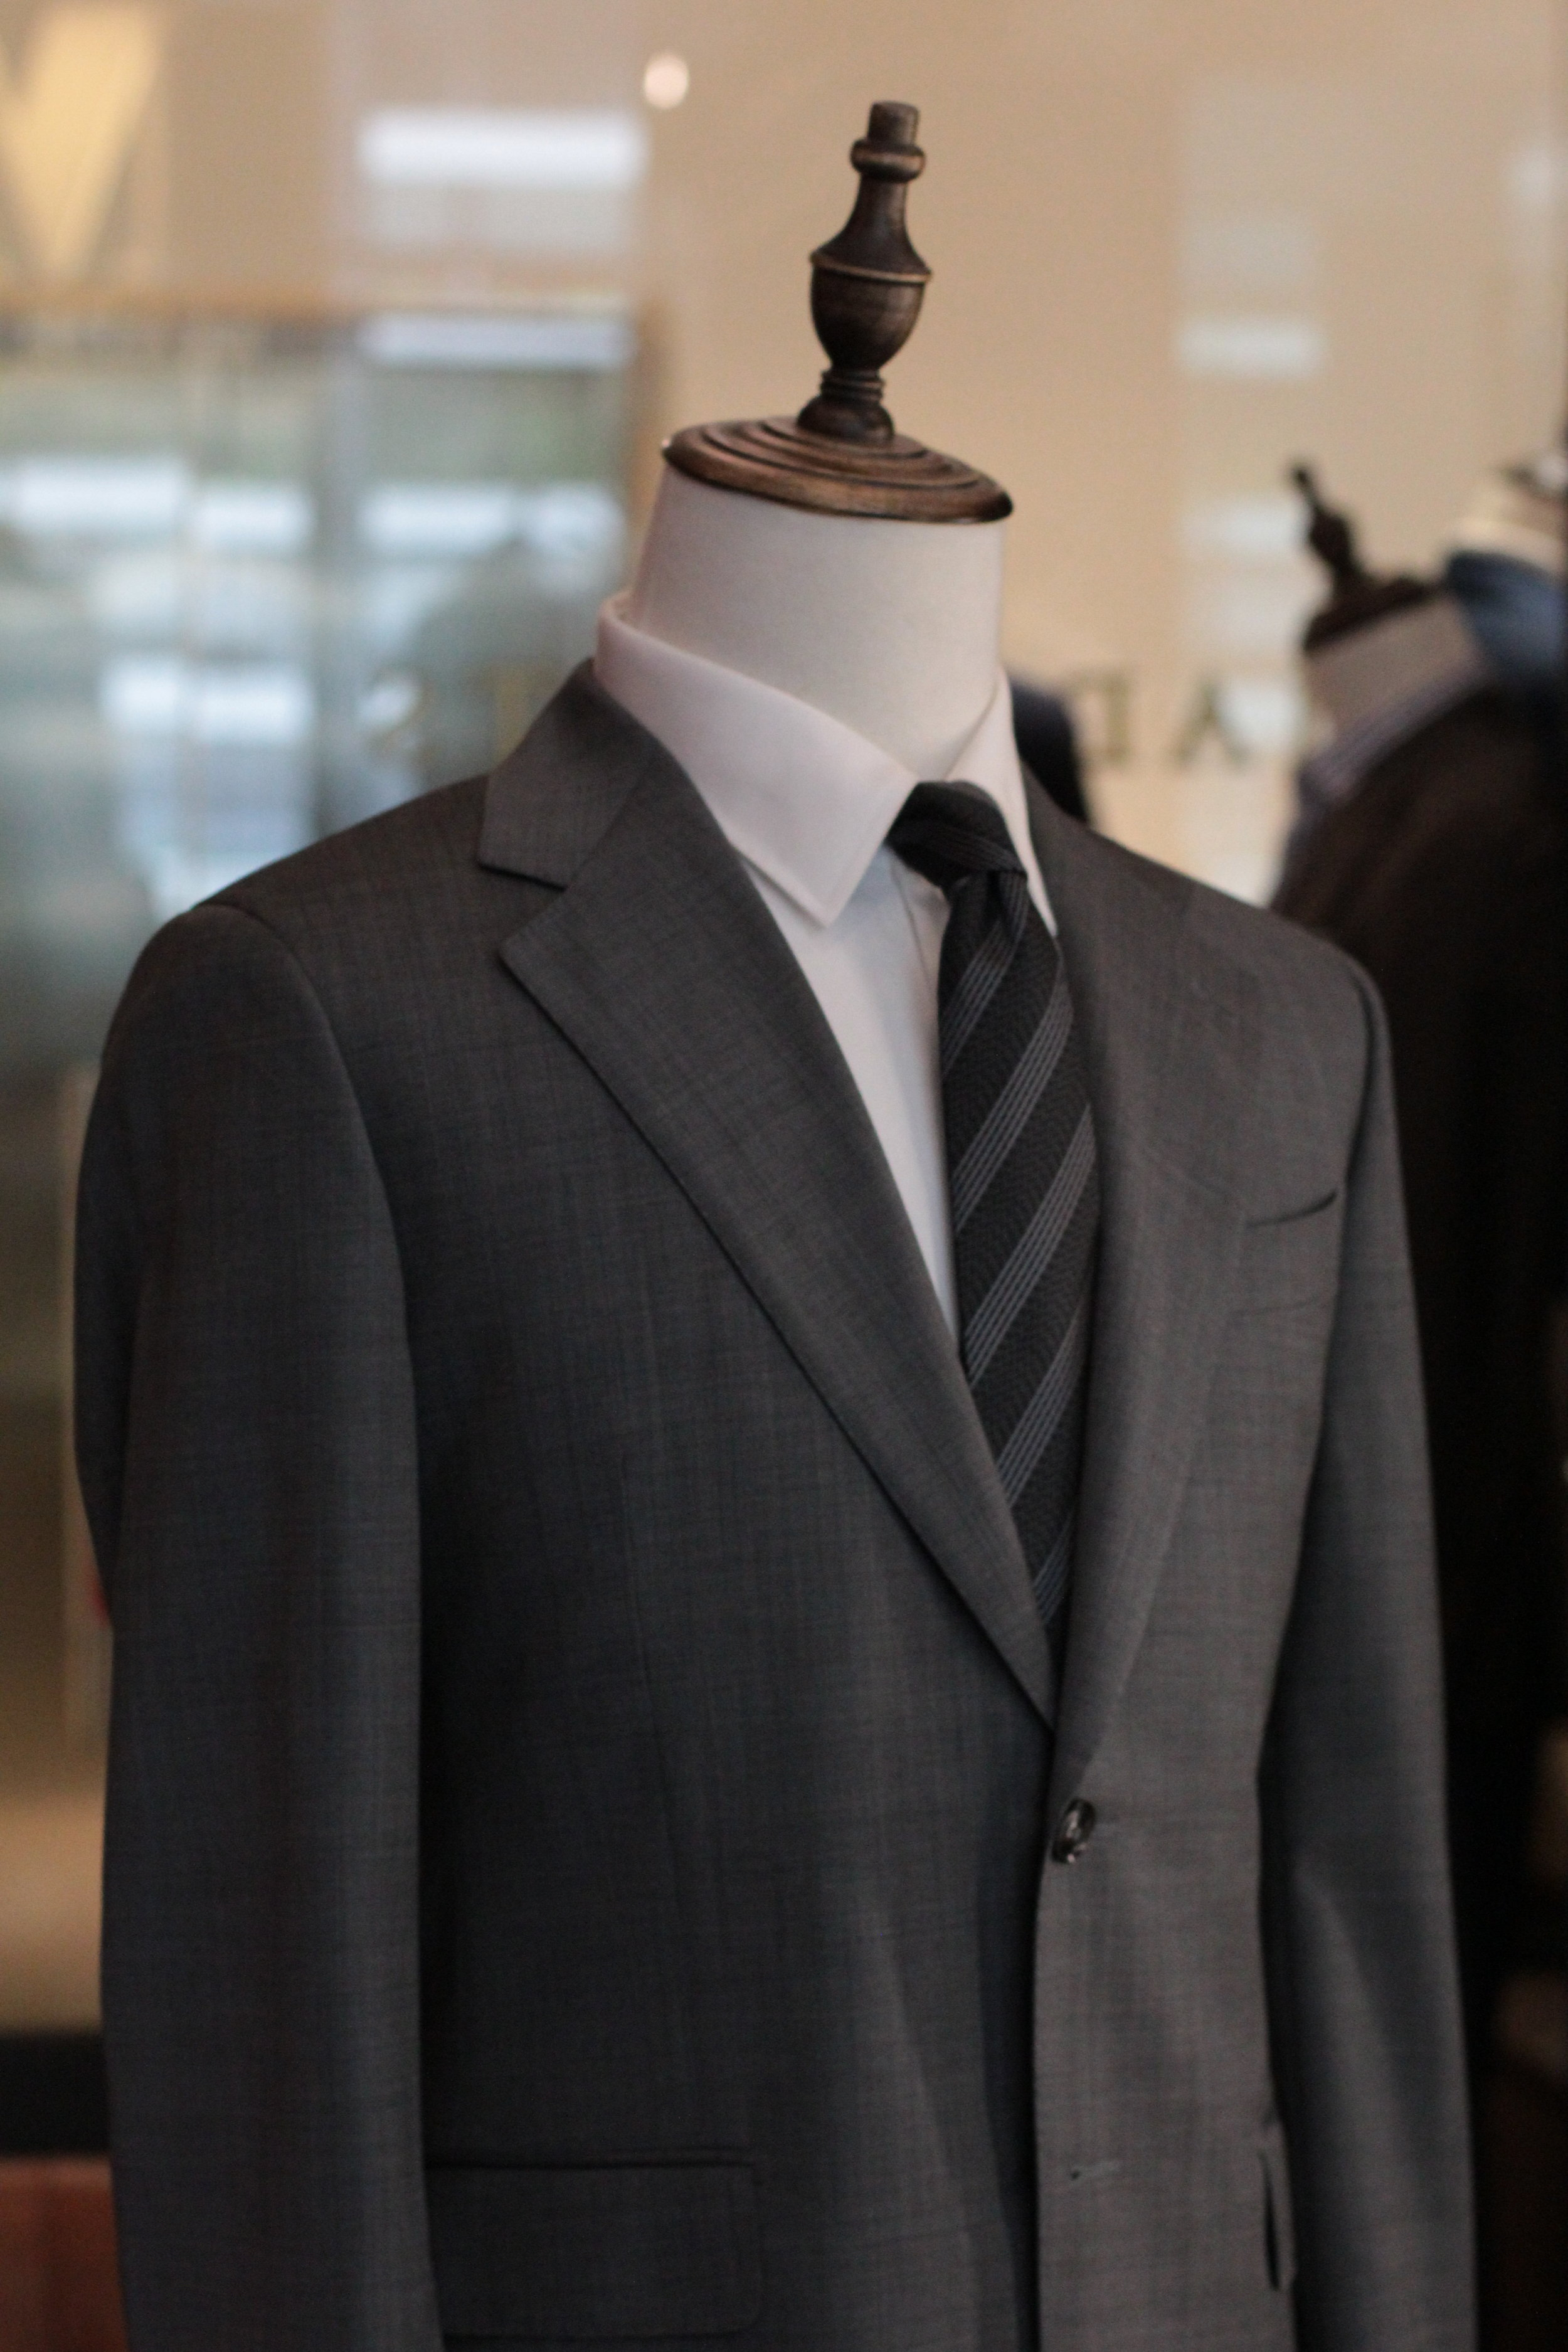 Mr Barbera Made Suits | Made to Measure Suits |Bespoke Singapore Tailor STYLBIELLA closeup.JPG